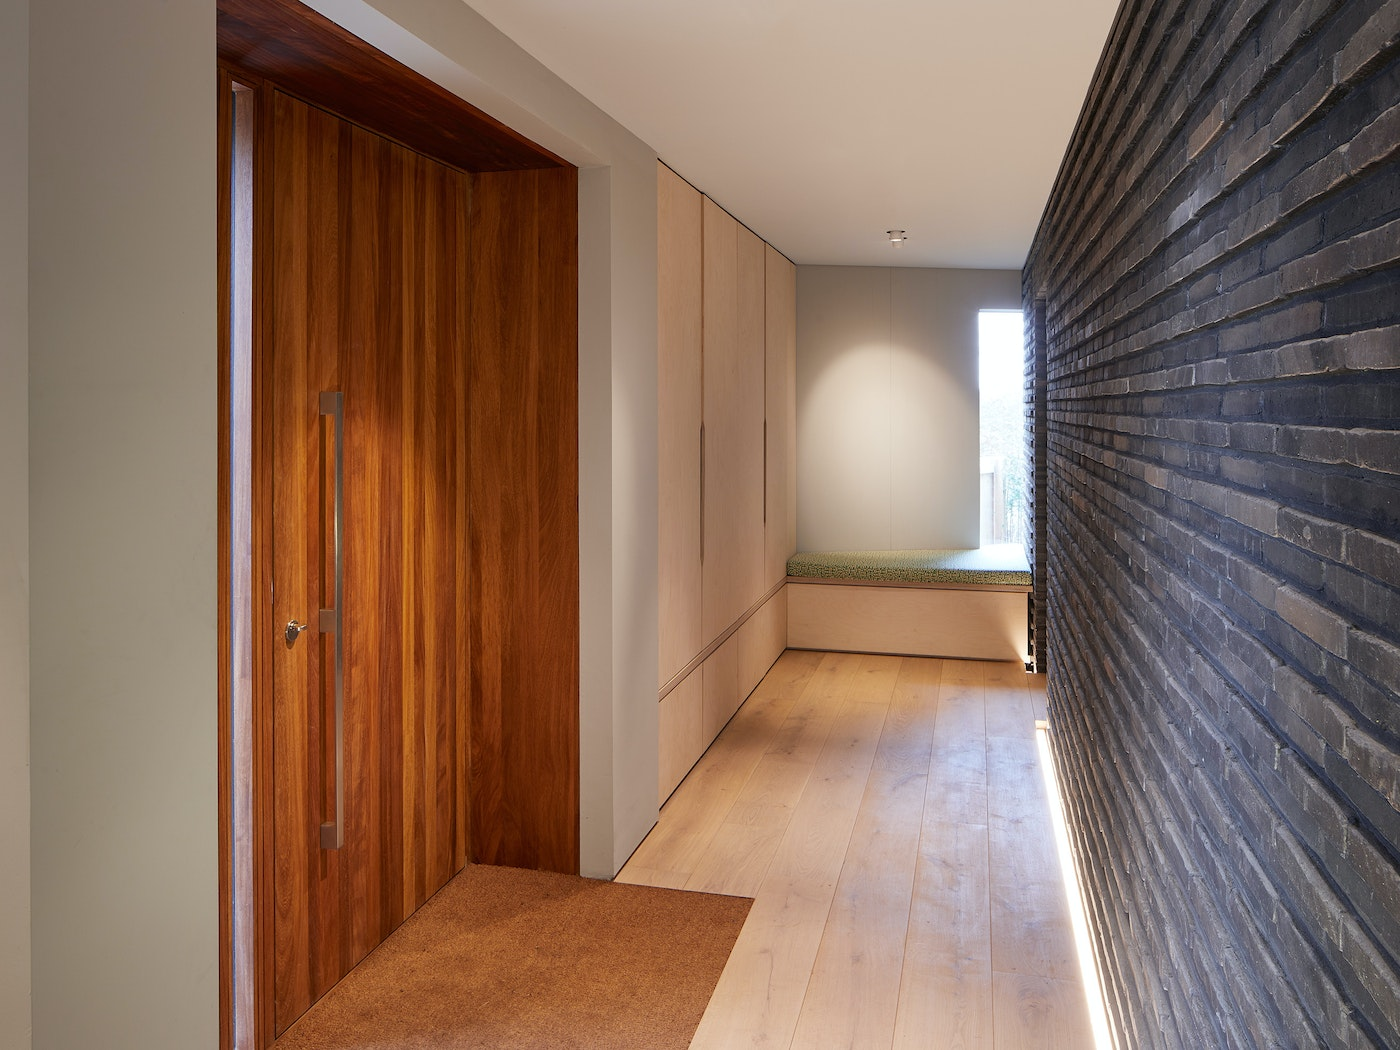 The Iroko door sits opposite a brick wall with similar raised elements works perfectly together